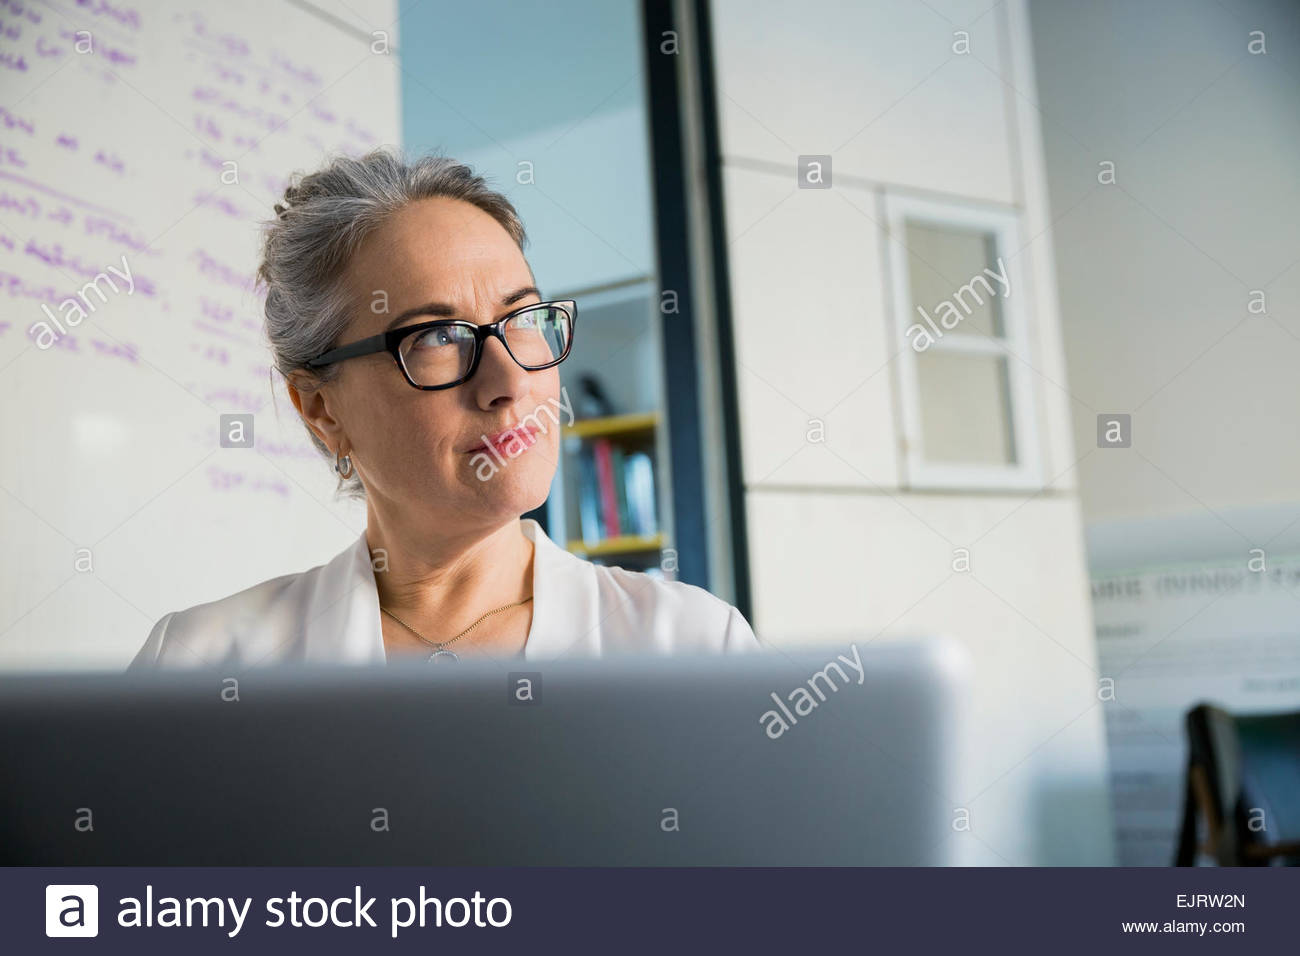 Pensive businesswoman working at laptop Photo Stock